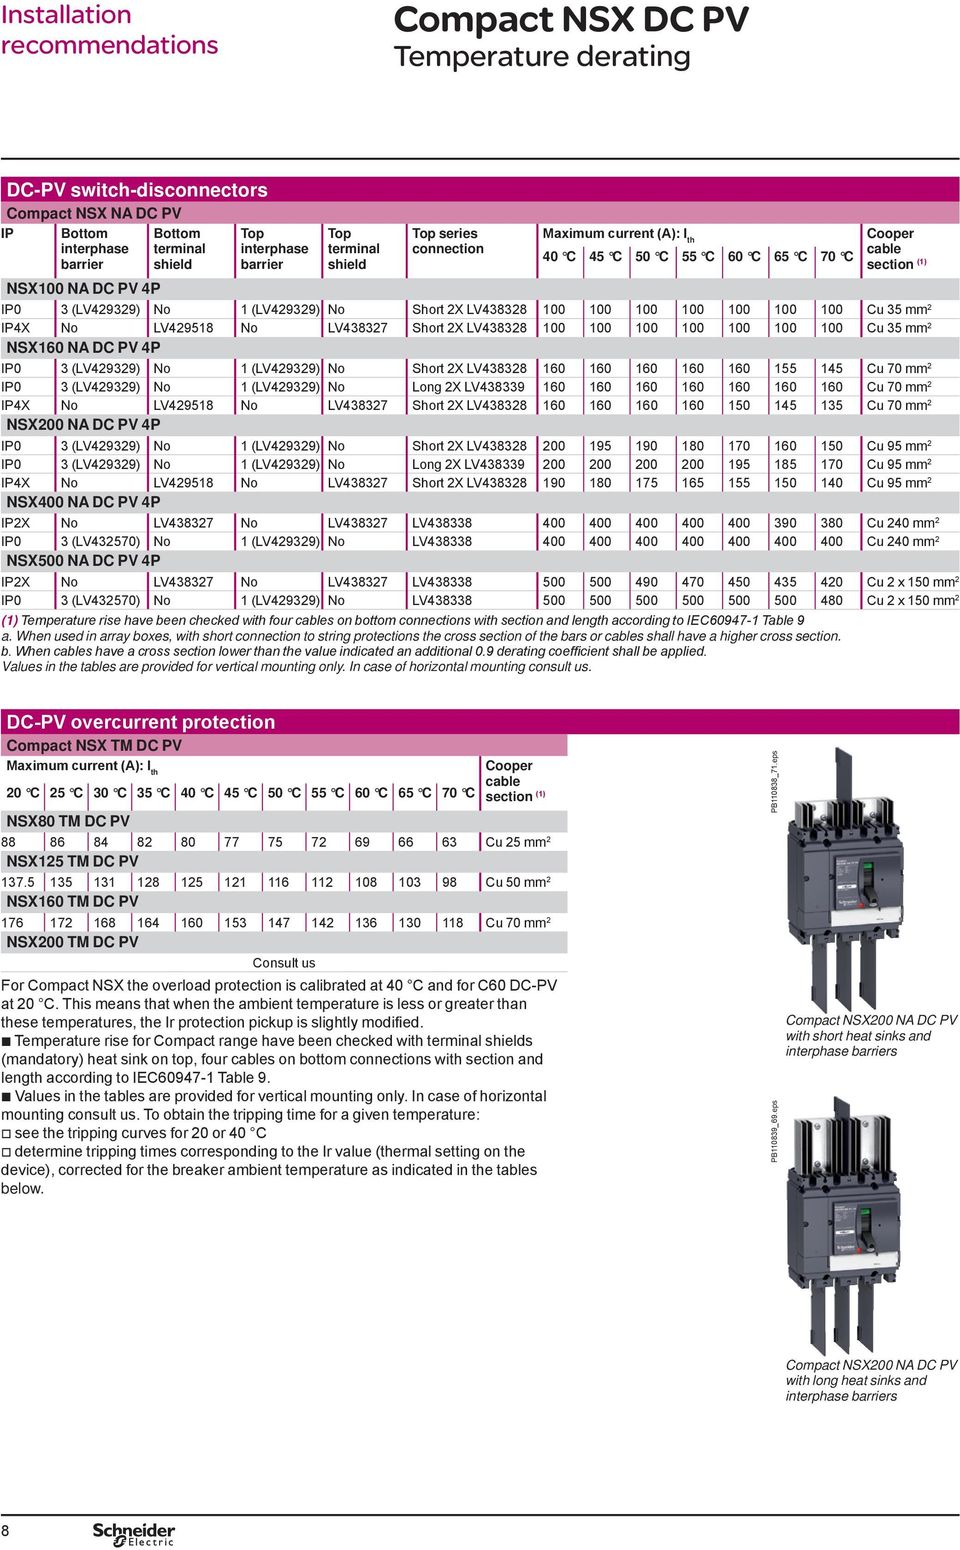 Low Voltage Direct Current Network Compact Nsx Dc Pv Circuit Fuse Box 100 Cu 35 Mm 2 Ip4x No Lv429518 Lv438327